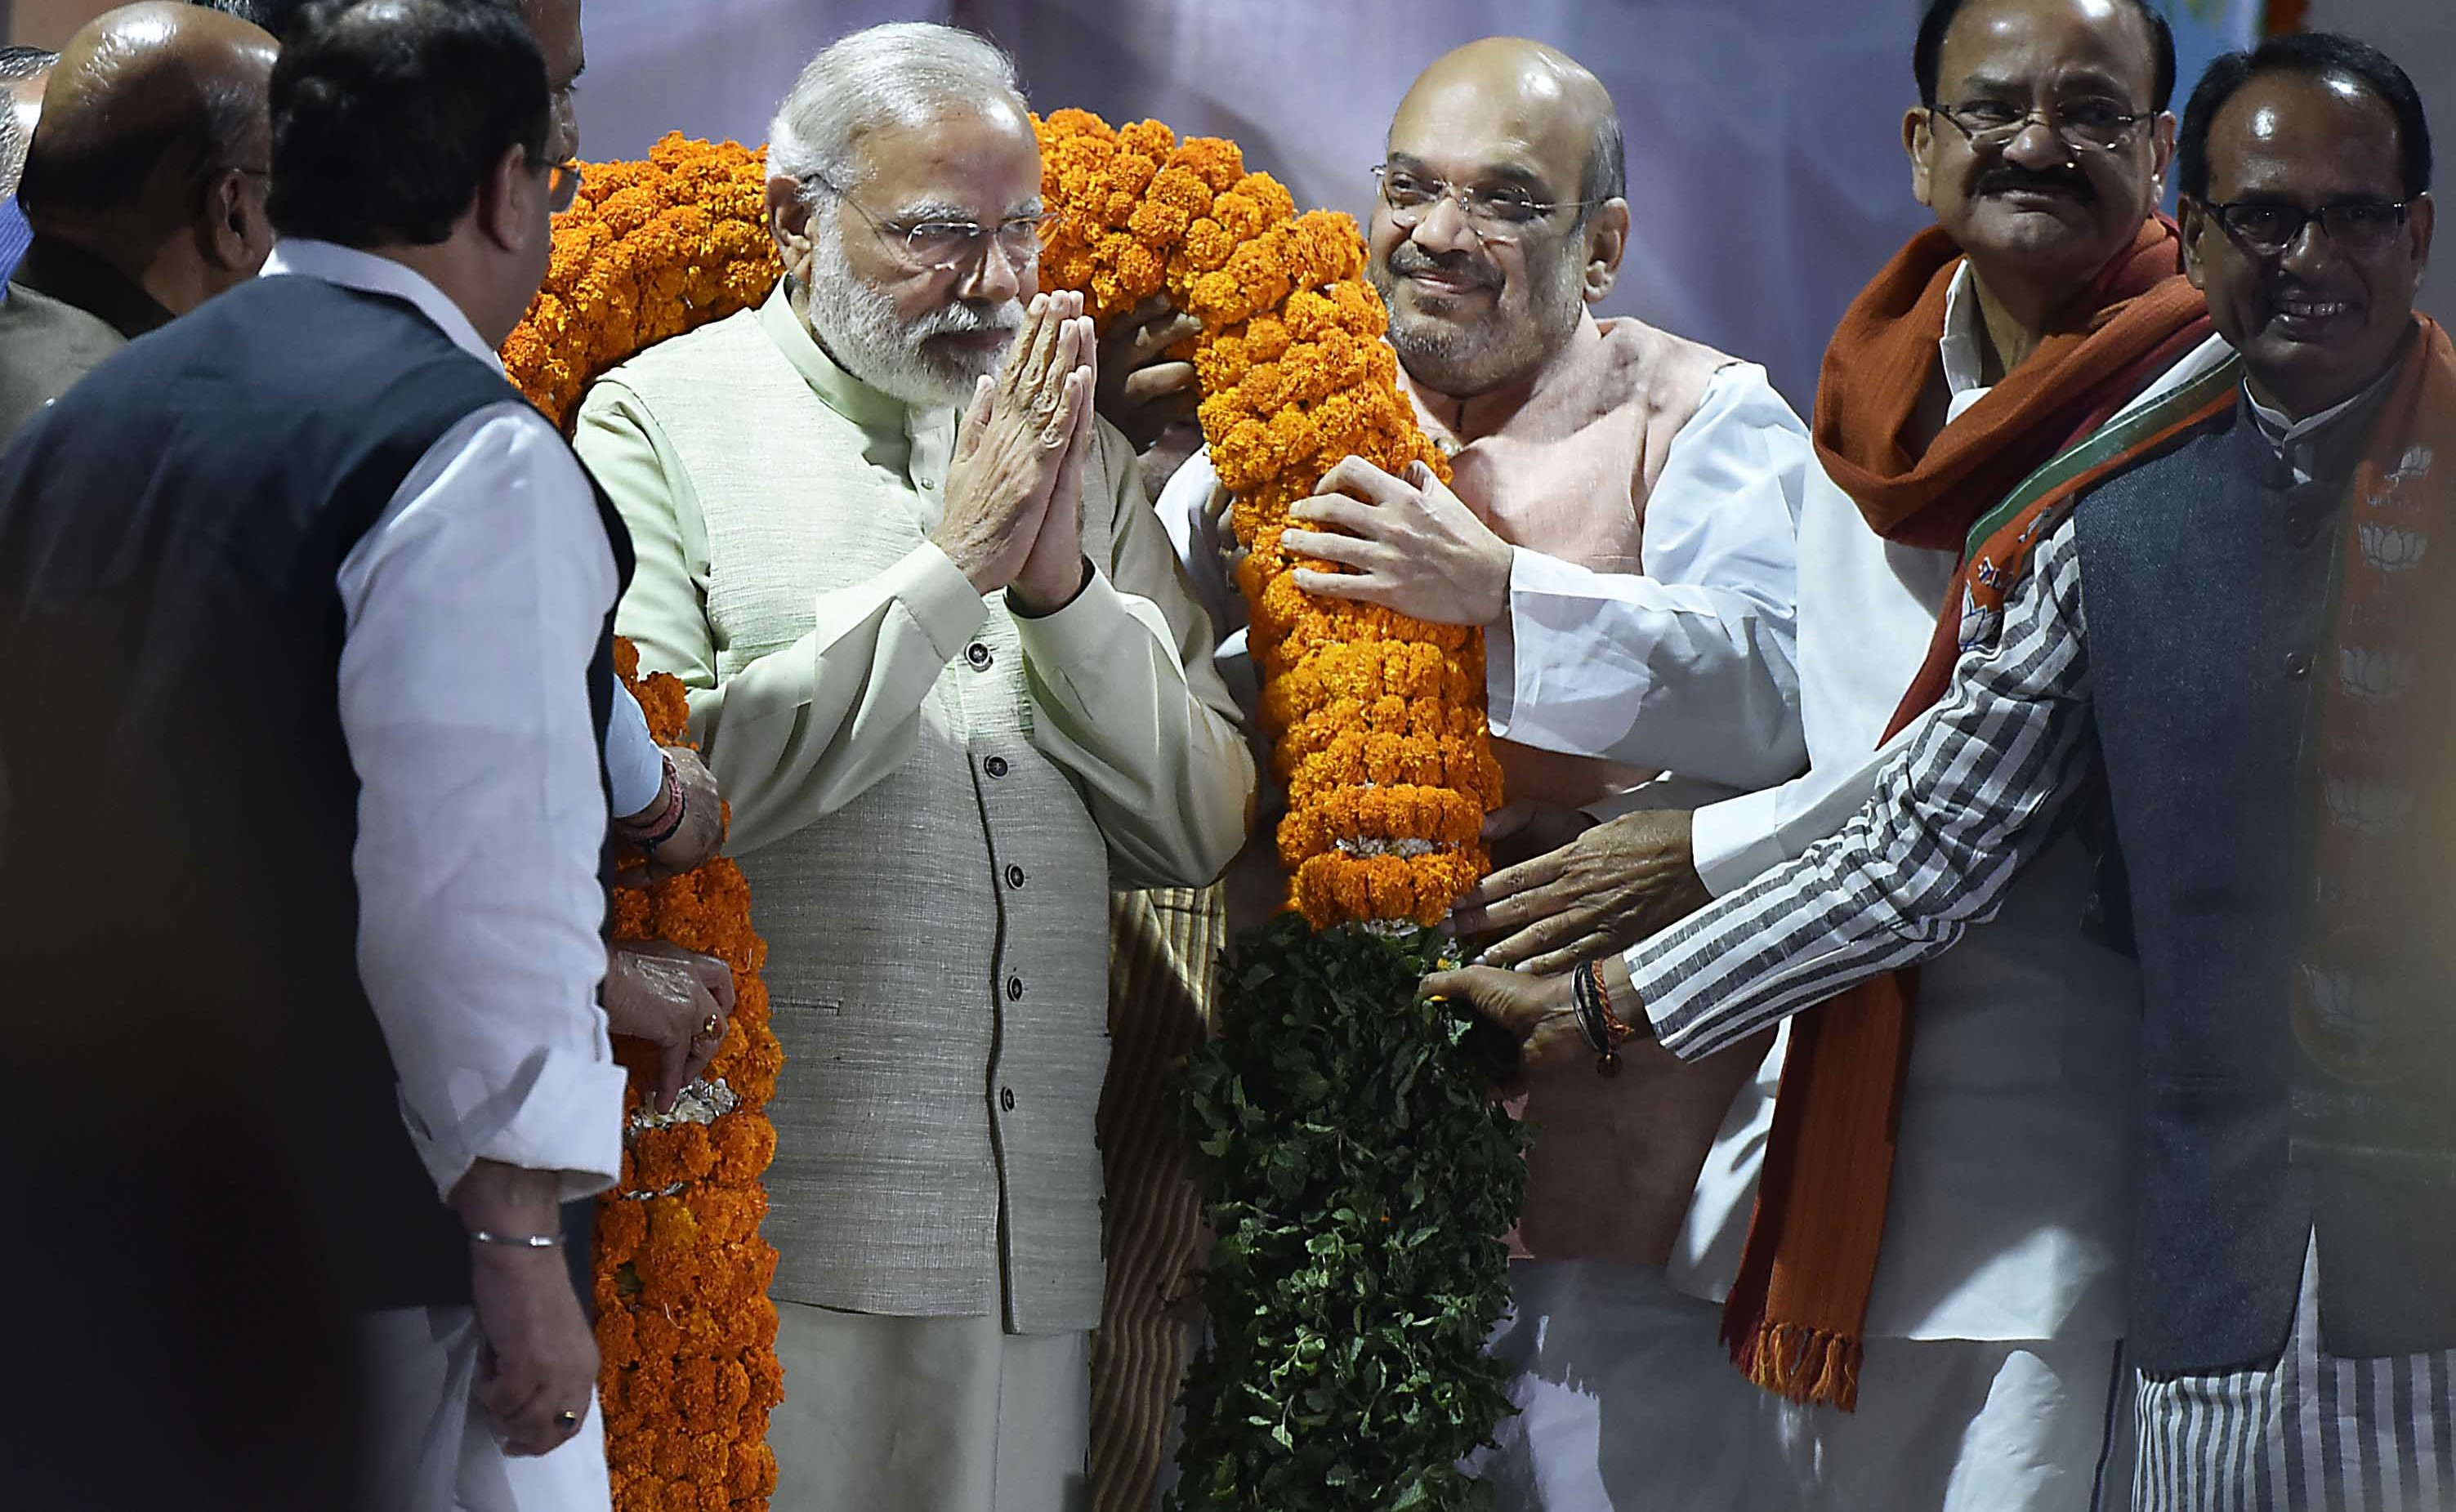 BJP leaders Amit Shah, Venkaiah Naidu, Shivraj Singh Chouhan and others greet Prime Minister Narendra Modi with a garland, March 2017 (Photo: Gtty Images/Hindustan Times/Raj K Raj)